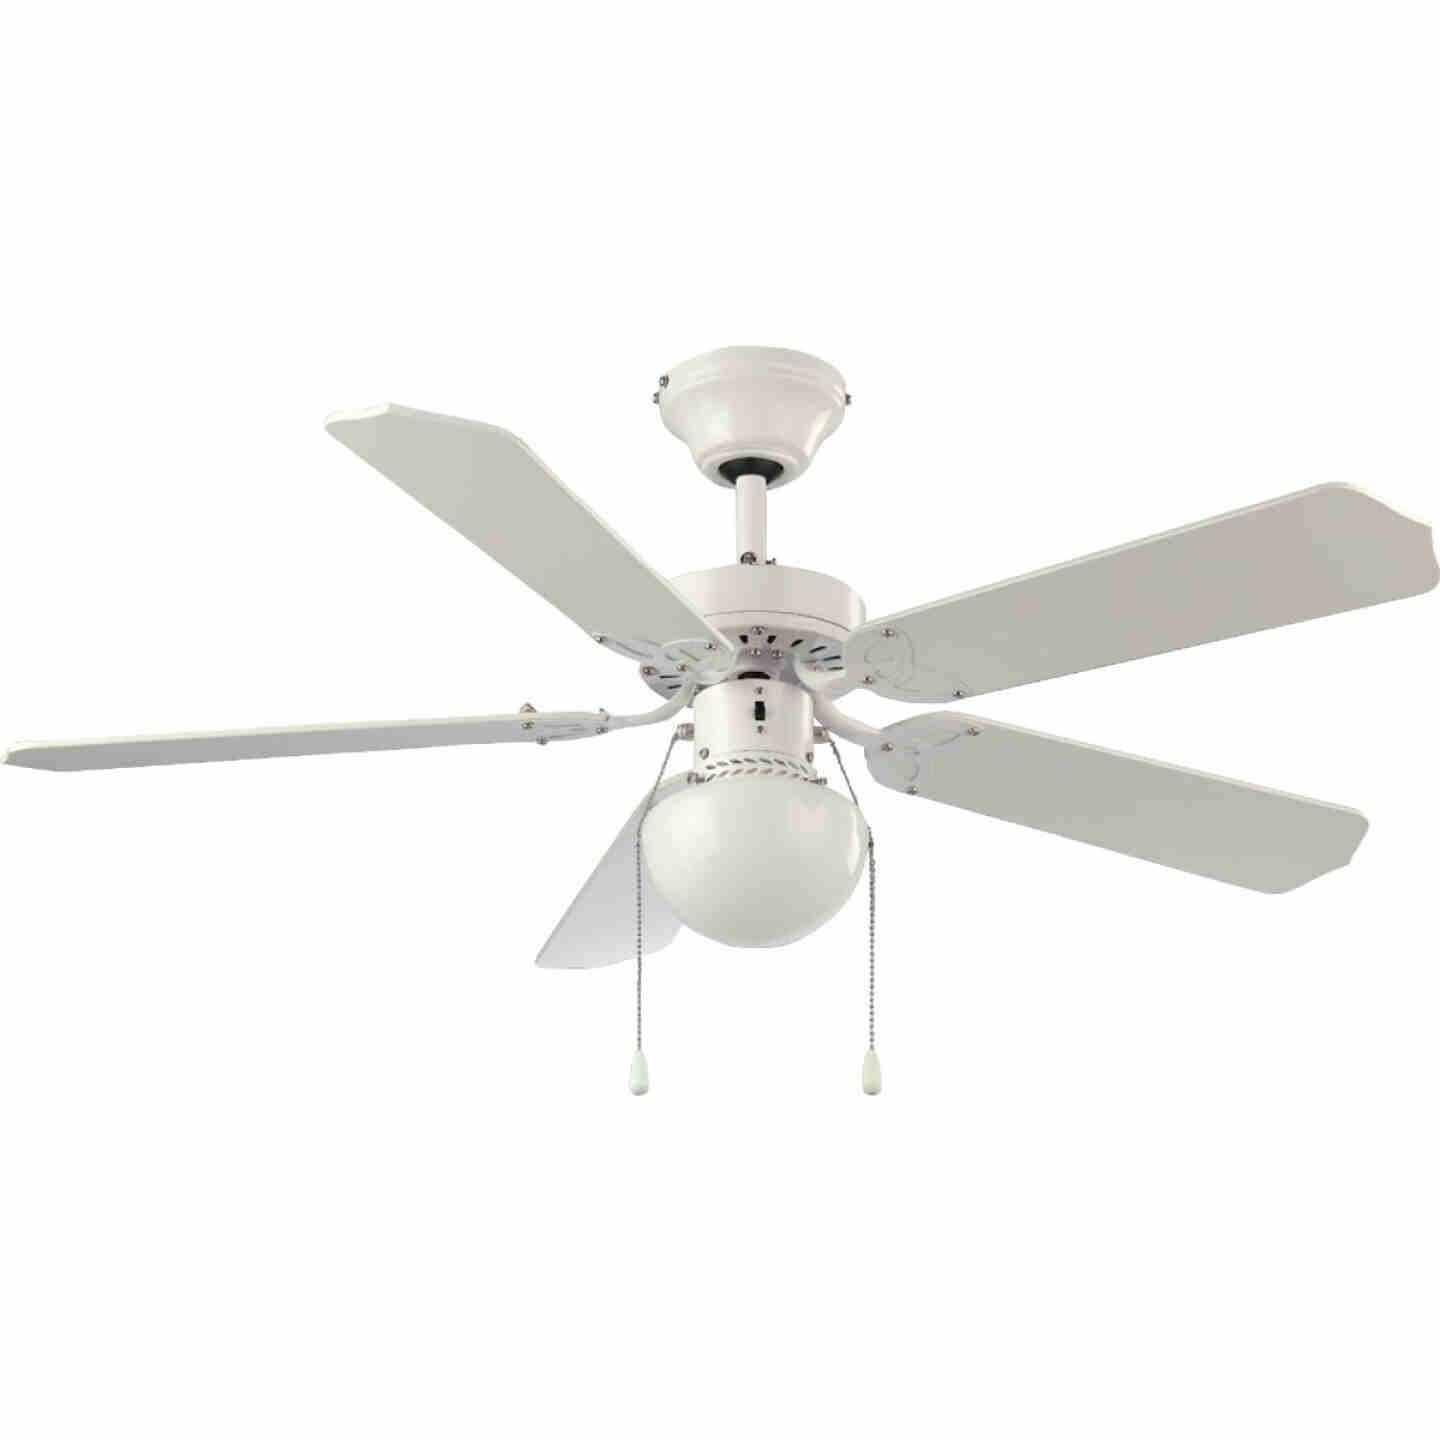 Home Impressions Micro Breeze 42 In. White Ceiling Fan with Light Kit Image 1